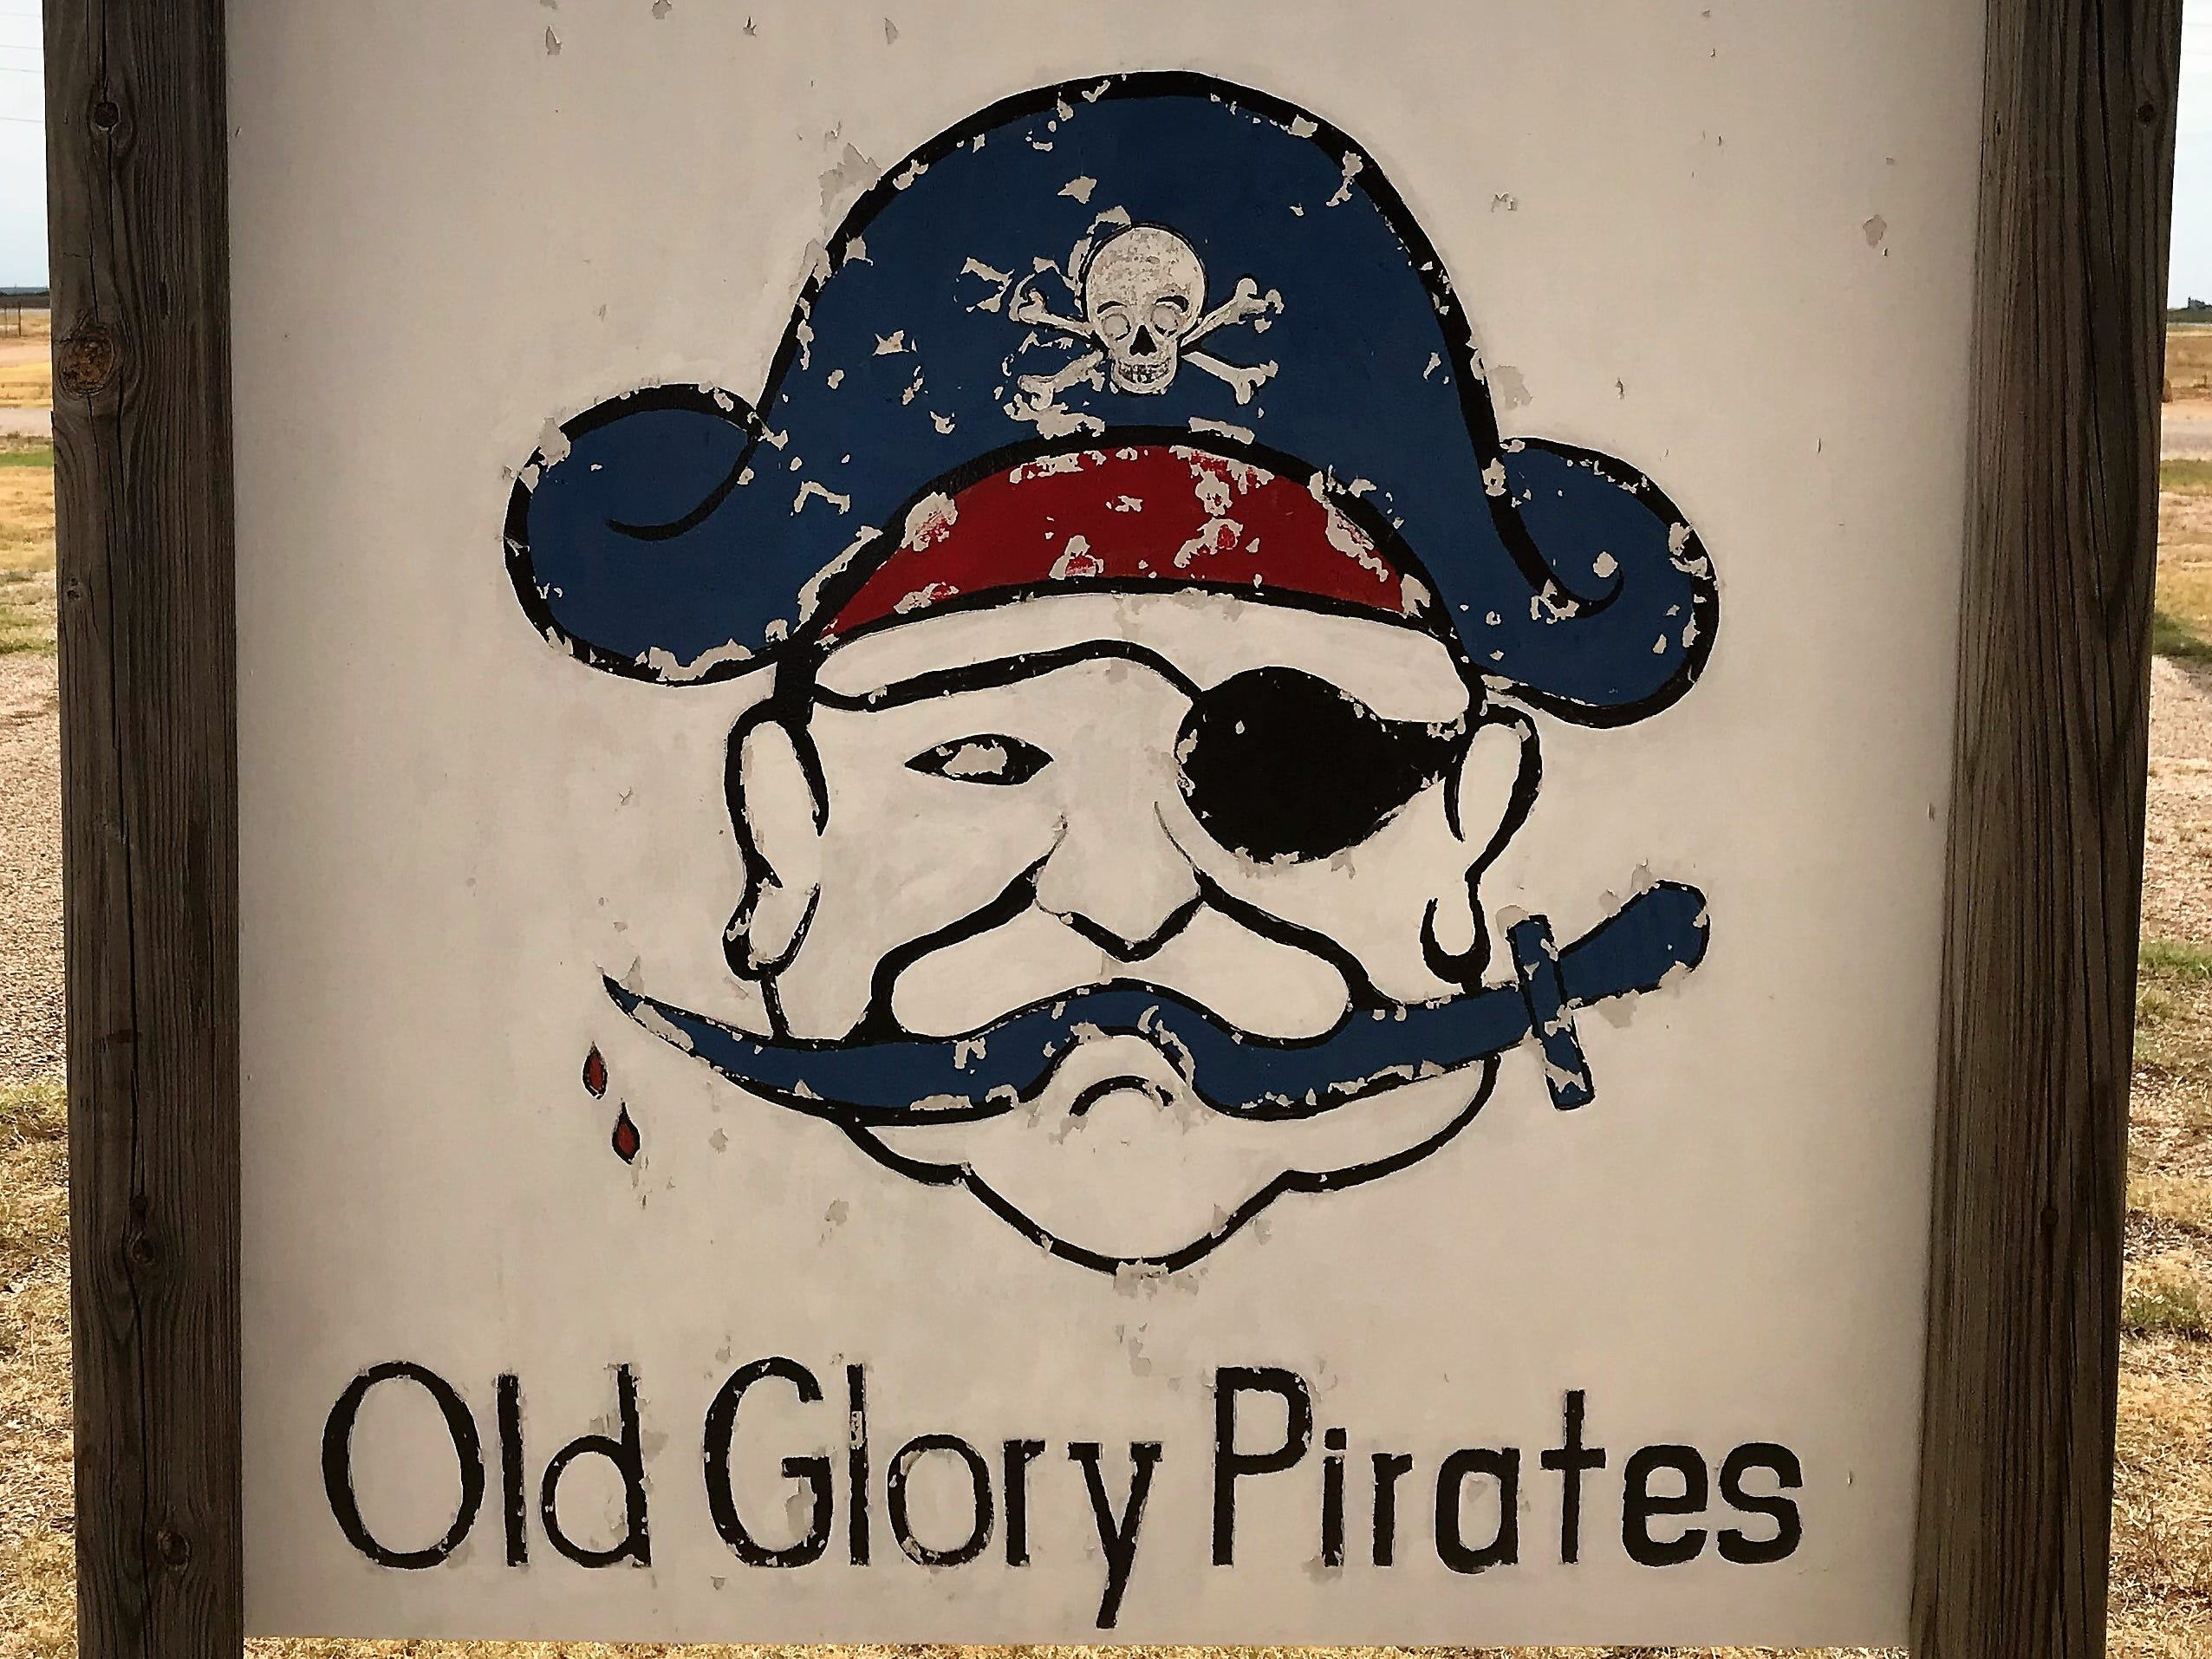 The Old Glory Pirates were known for their basketball teams.